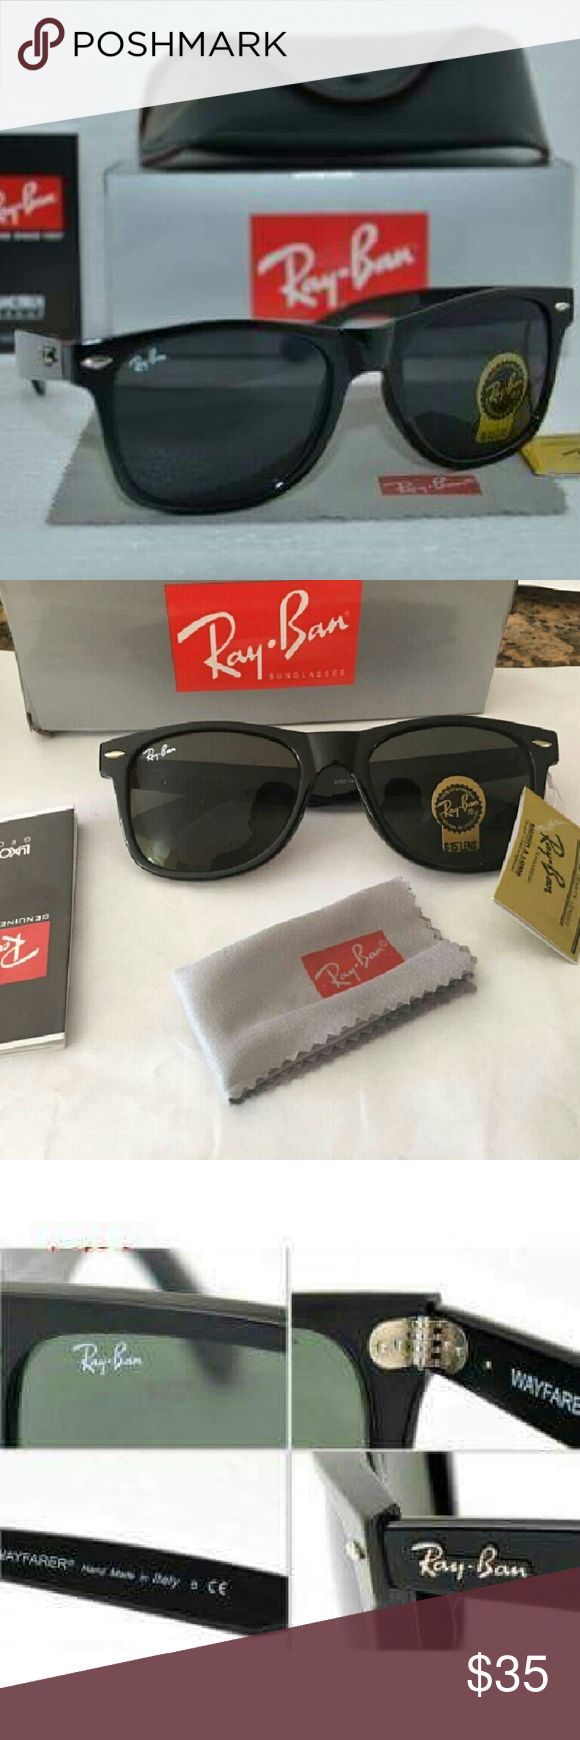 Ray-ban sunglasses Men's / Women's **Great Christmas Gift** (Ray ban sunglasses with box and case ) You will receive 100%, you see in the picture t's Chinese brand  All items are brand new, never used 100% of the area. size : large 54mm 1 Box  1 sunglass  1 Sunglass Bag  1 Sunglass cleaning cloth  1 Certification Tag  1 Certification instruction book Ray-Ban Accessories